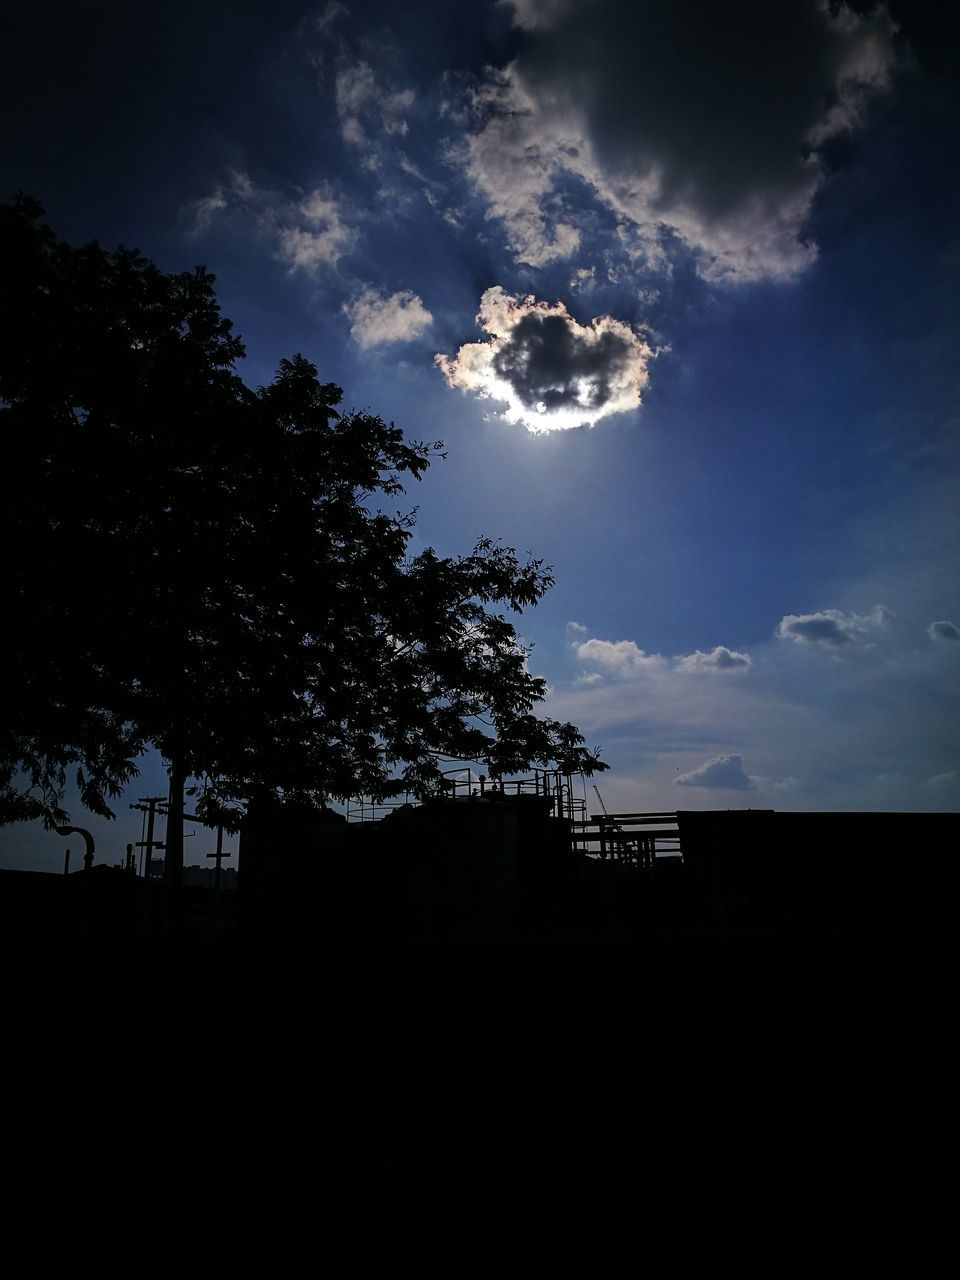 silhouette, sky, low angle view, nature, tree, no people, architecture, outdoors, day